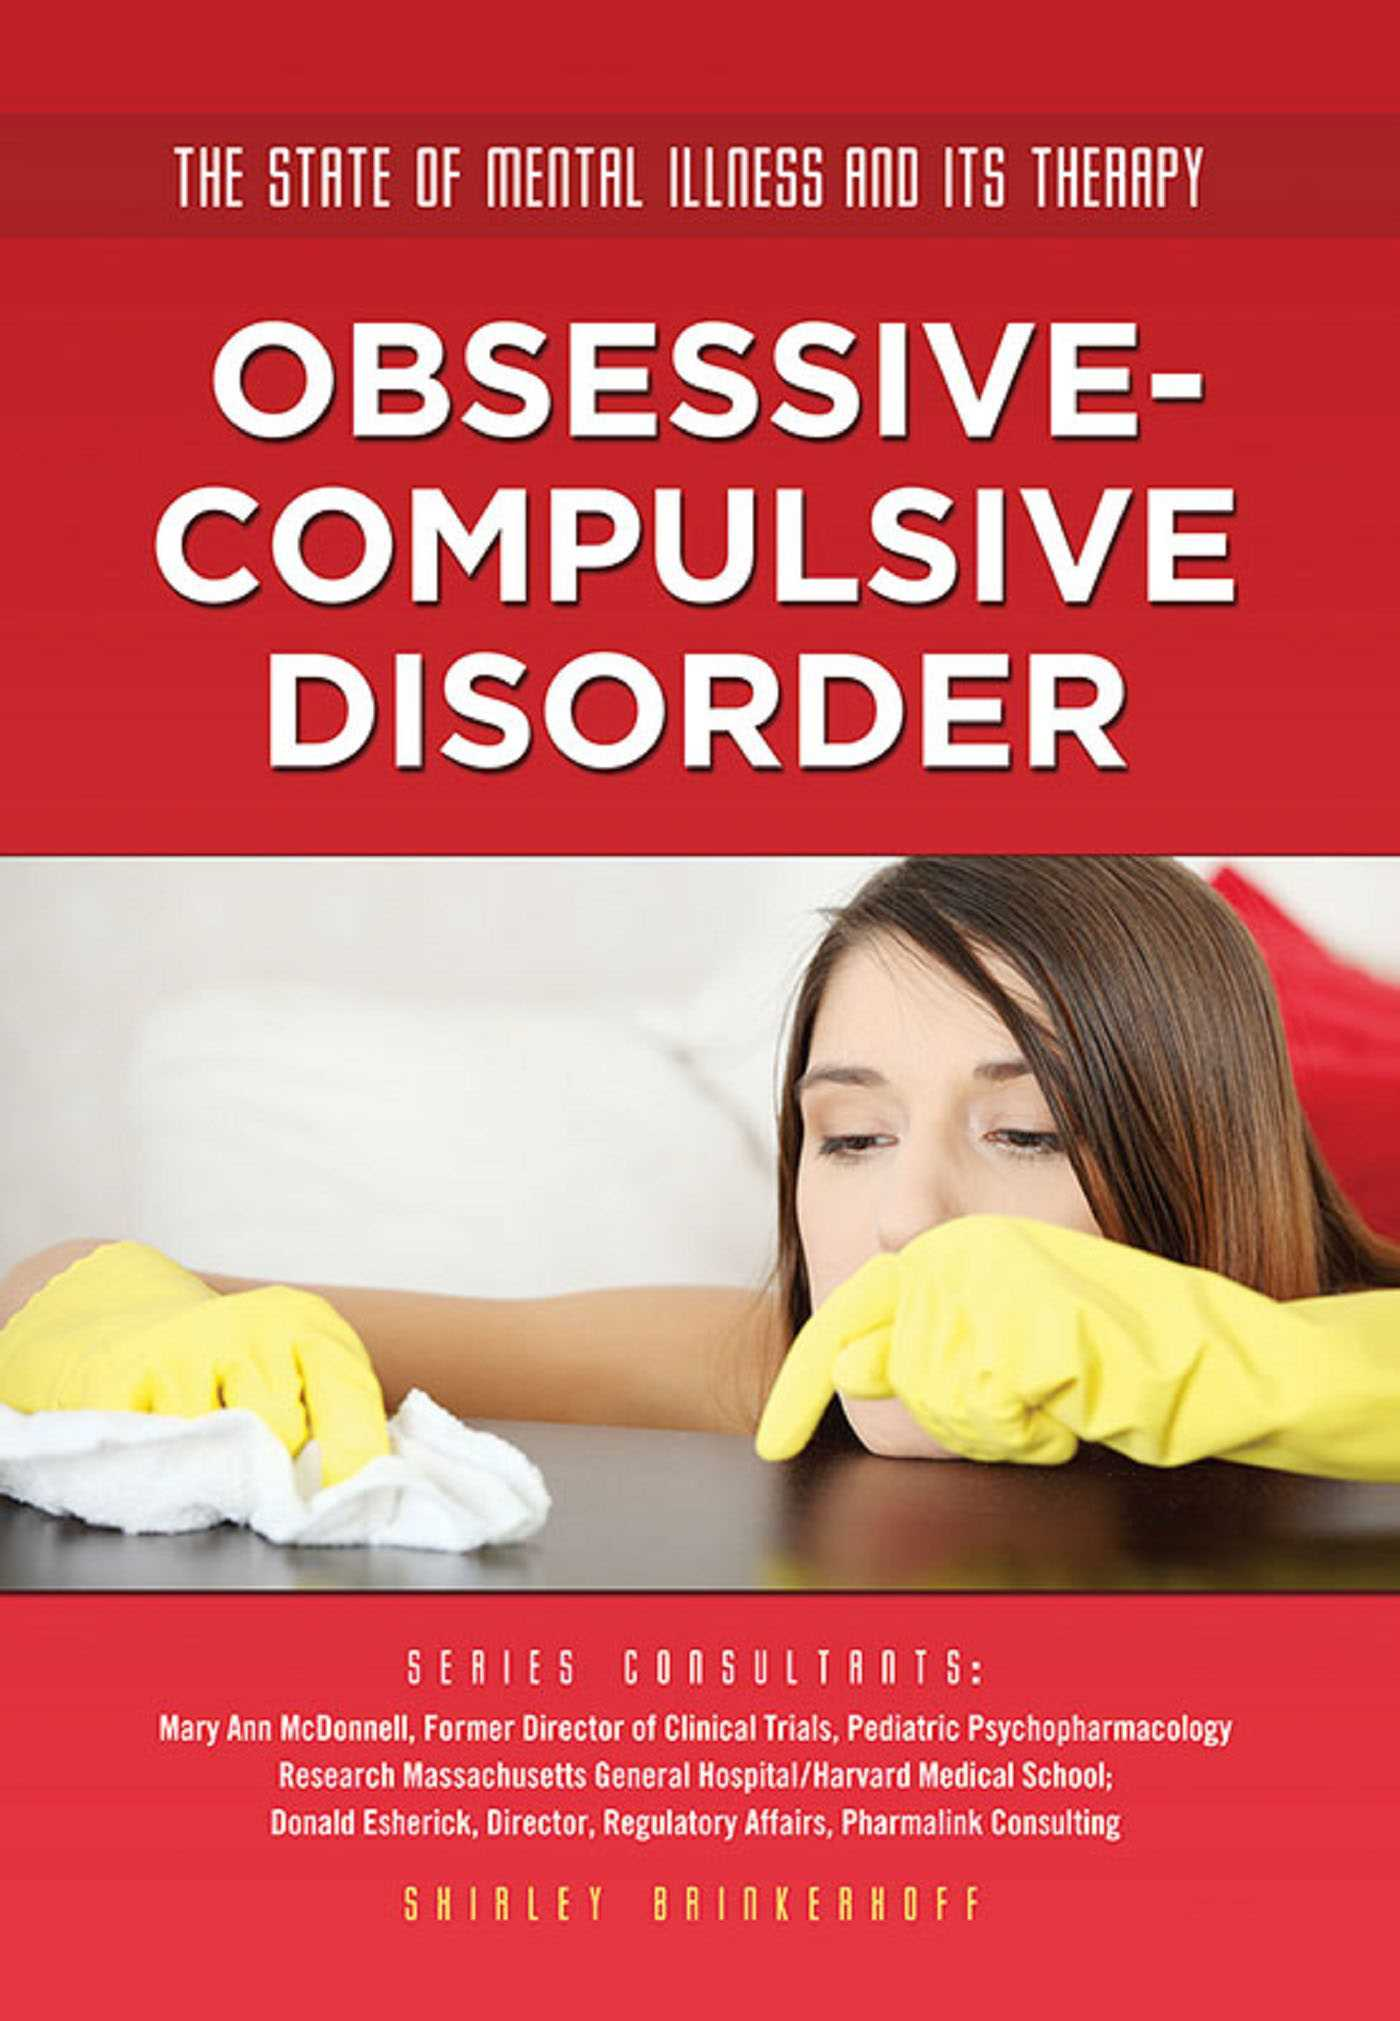 an introduction to the issue of obsessive compulsive disorder in todays society Introduction the constellation of features similar to the obsessive-compulsive (anankastic) personality disorder (ocpd) was first described by pierre janet in 1903 as the psychasthenic state.